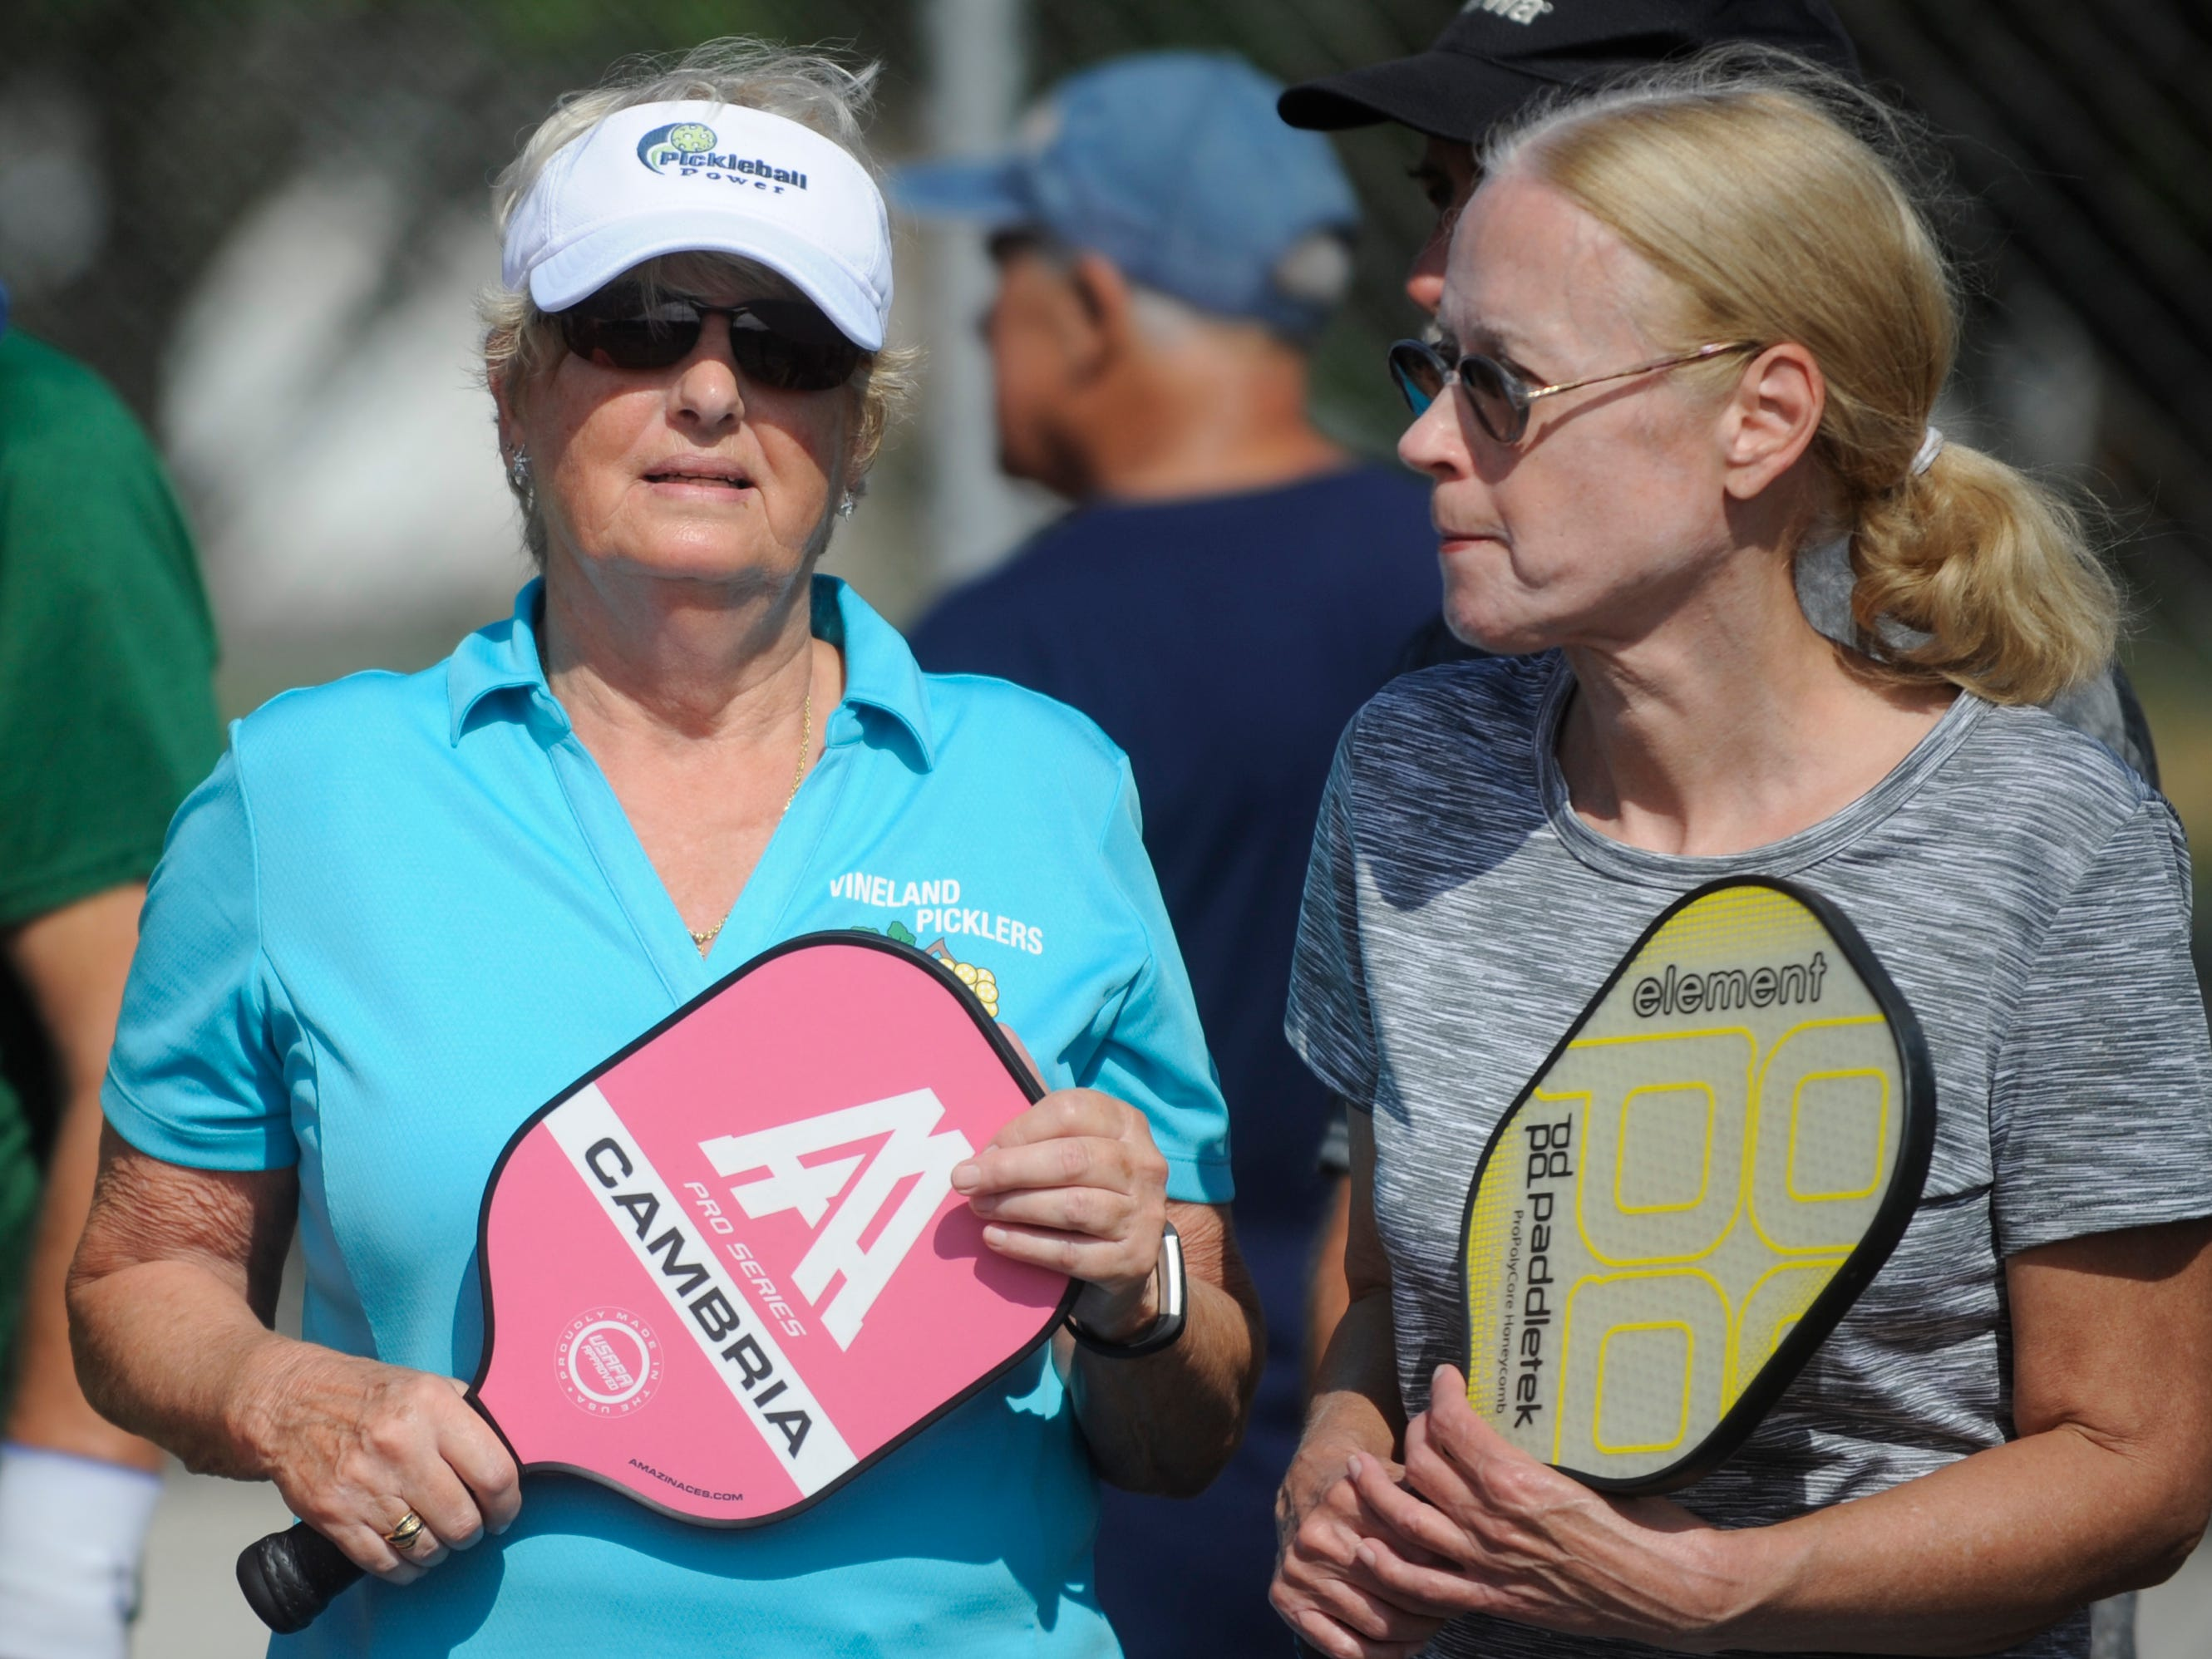 Vineland seniors have a pickleball league at Pagluighi Park. Pickleball is a racket sport that combines elements of badminton, pingpong and tennis.